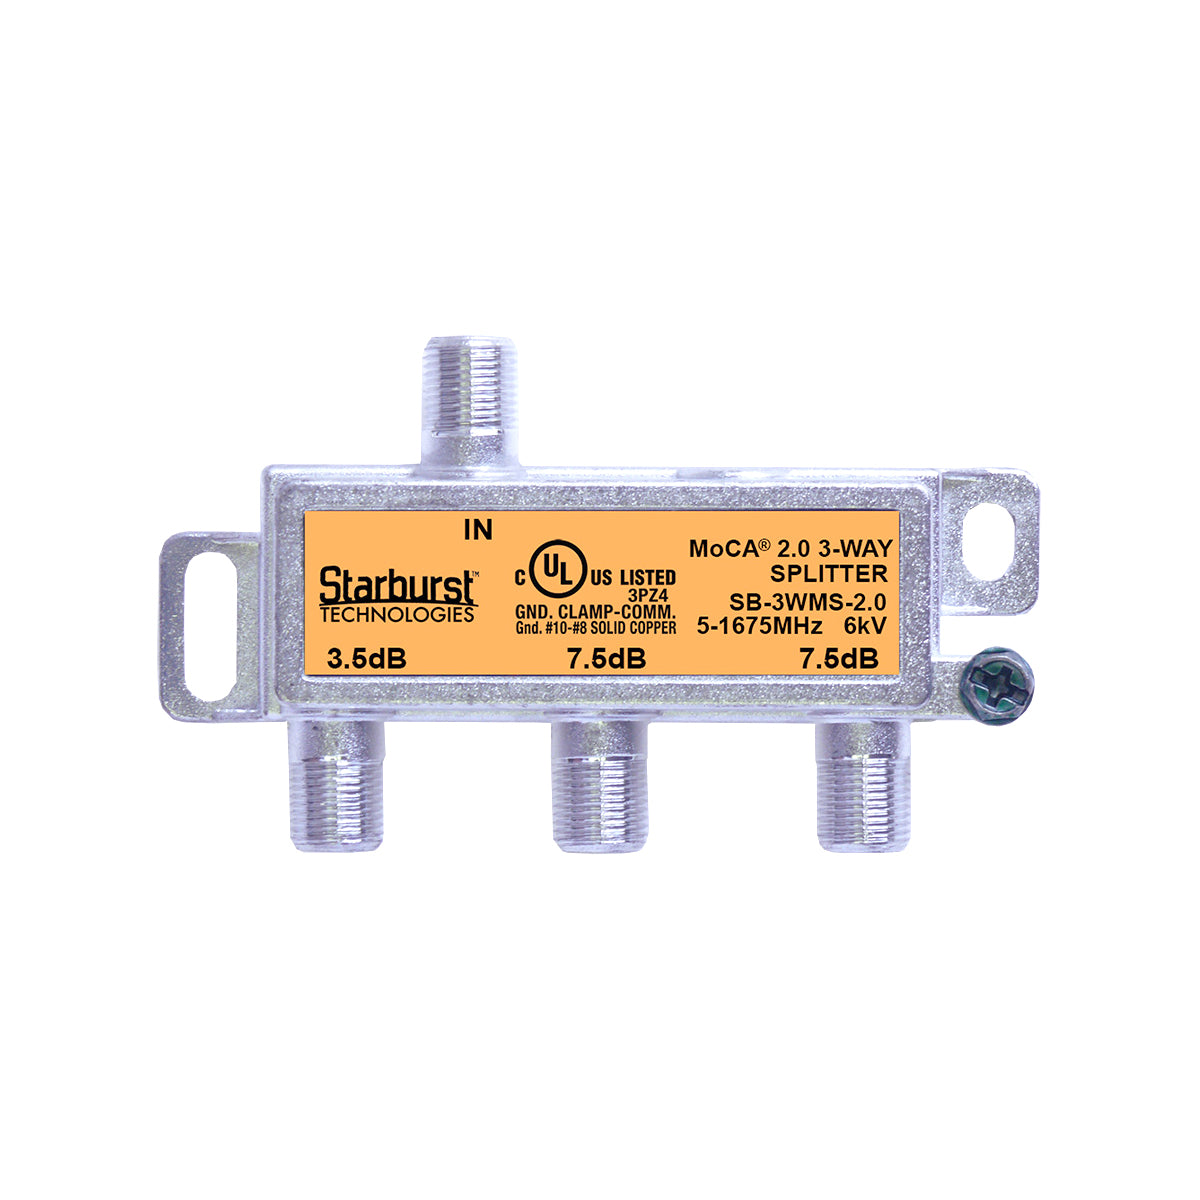 SB-3WMS-2.0 MoCA 2.0 Splitter 3 Way Horizontal 5-1675MHz Wide Band